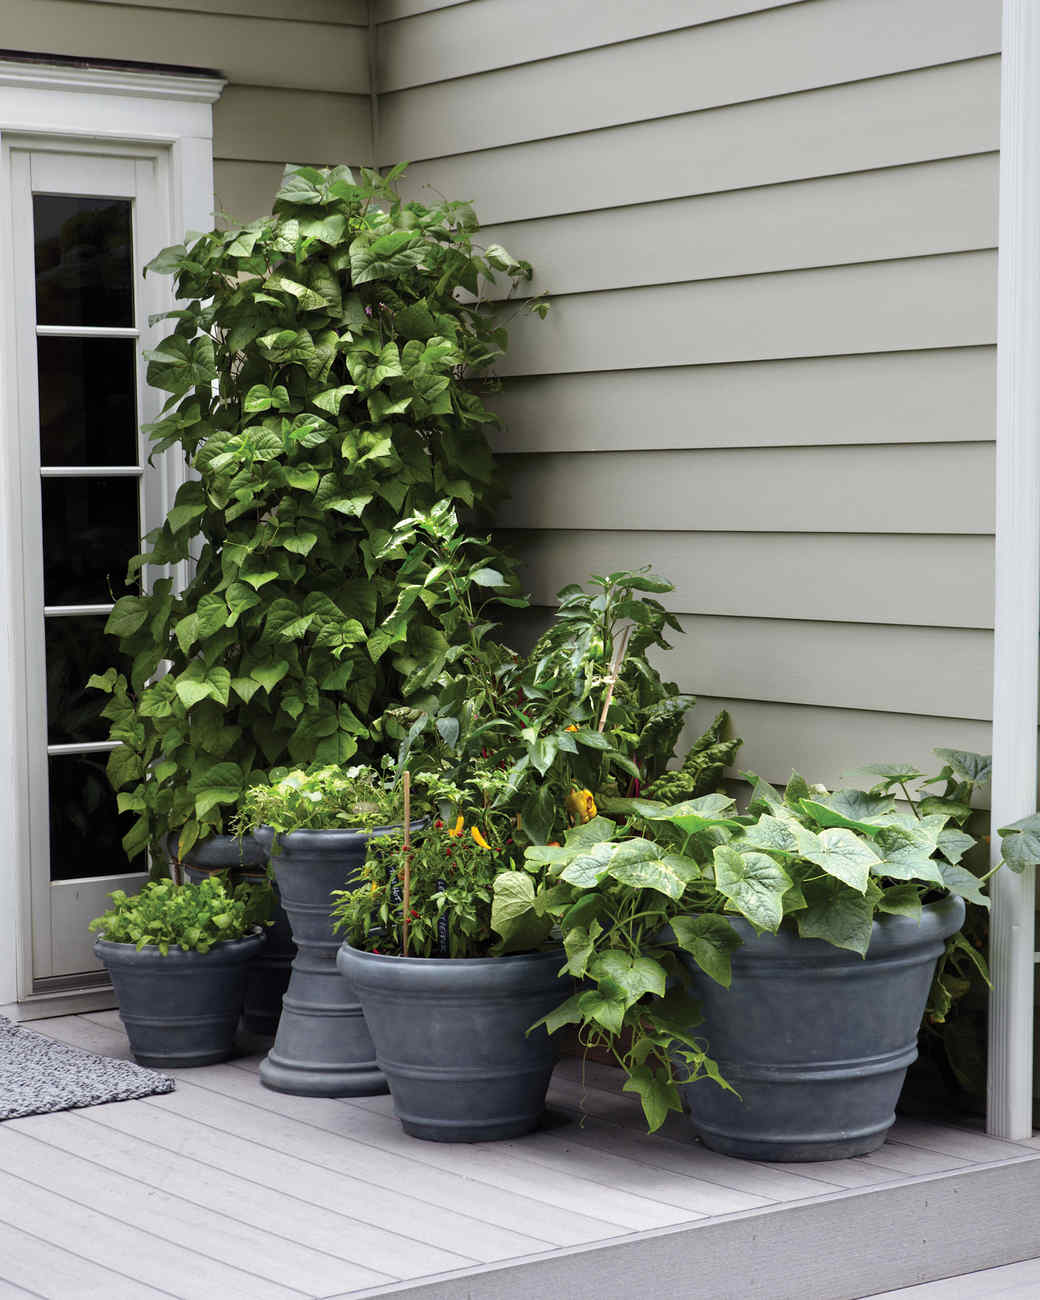 patio garden - Garden Ideas In Small Spaces